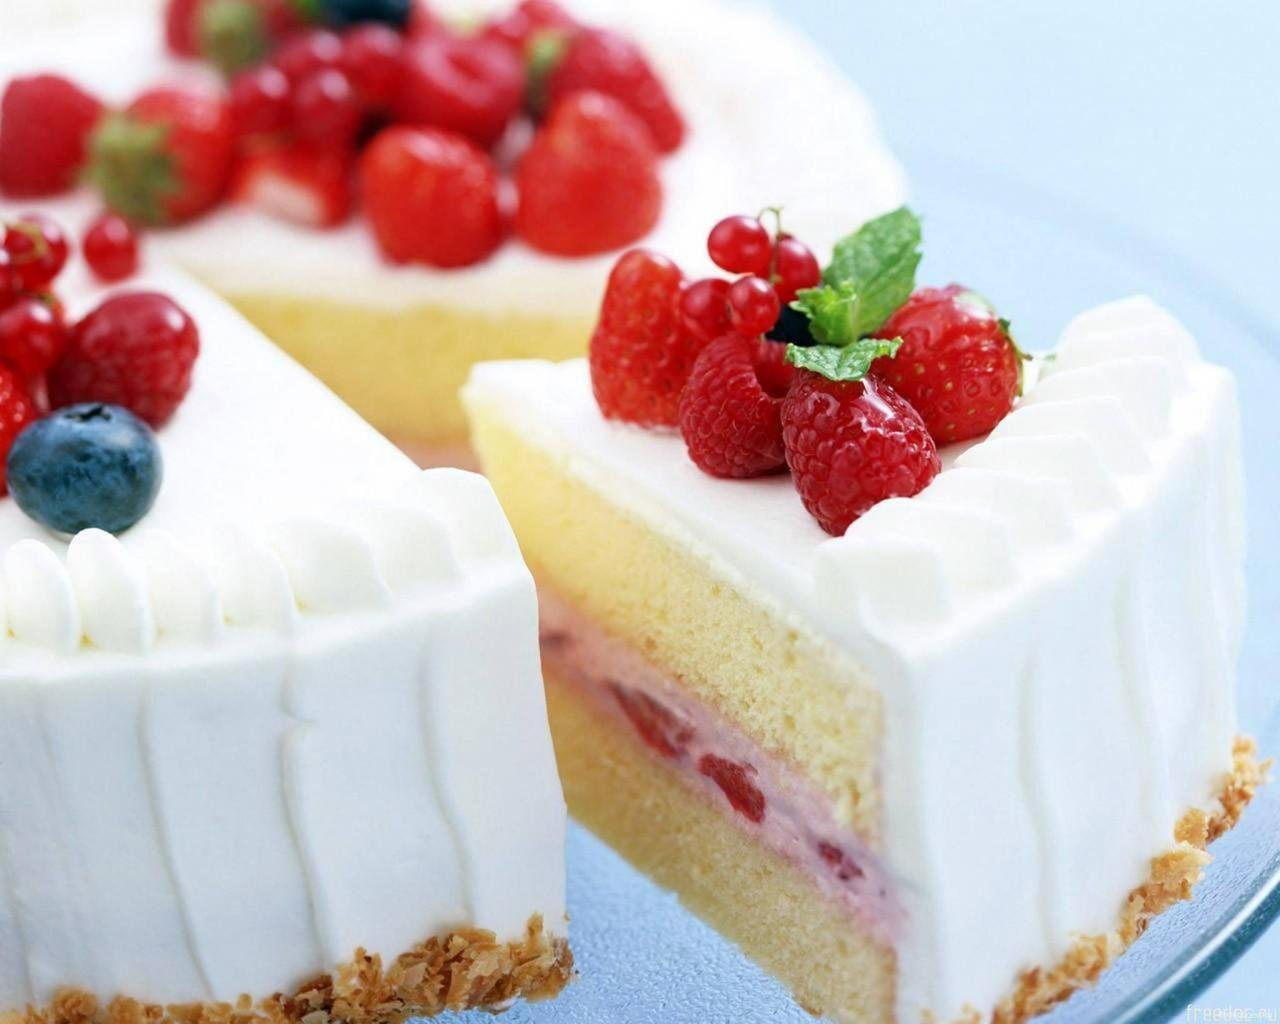 Free download Cake wallpaper ID:244279 hd 1280x1024 for computer